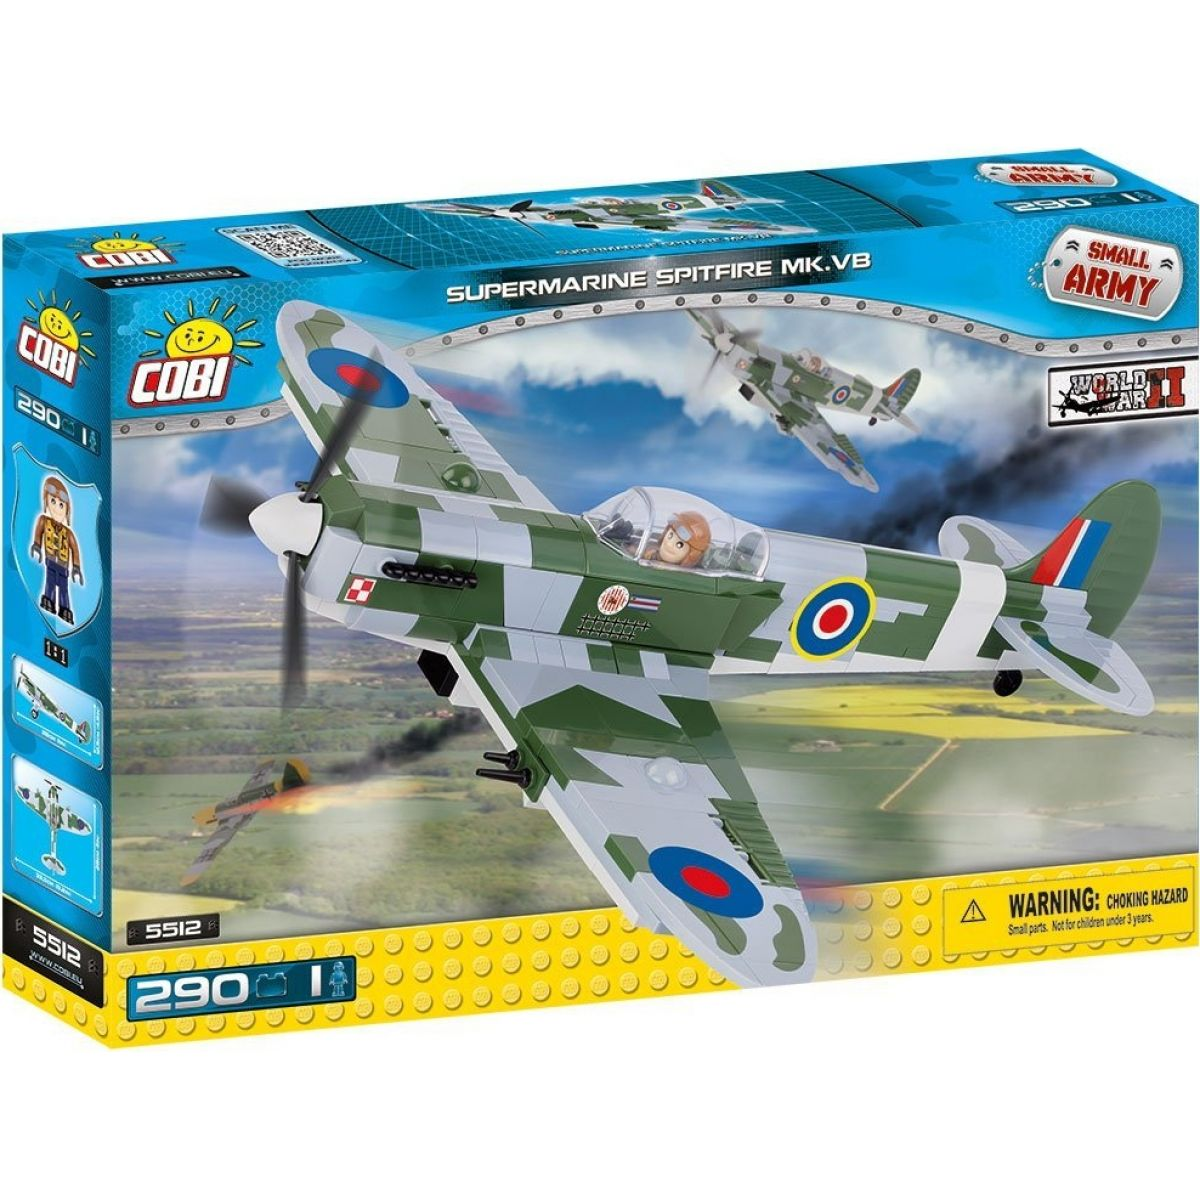 COBI 5512 SMALL ARMY Supermarine Spitfire Mk VB